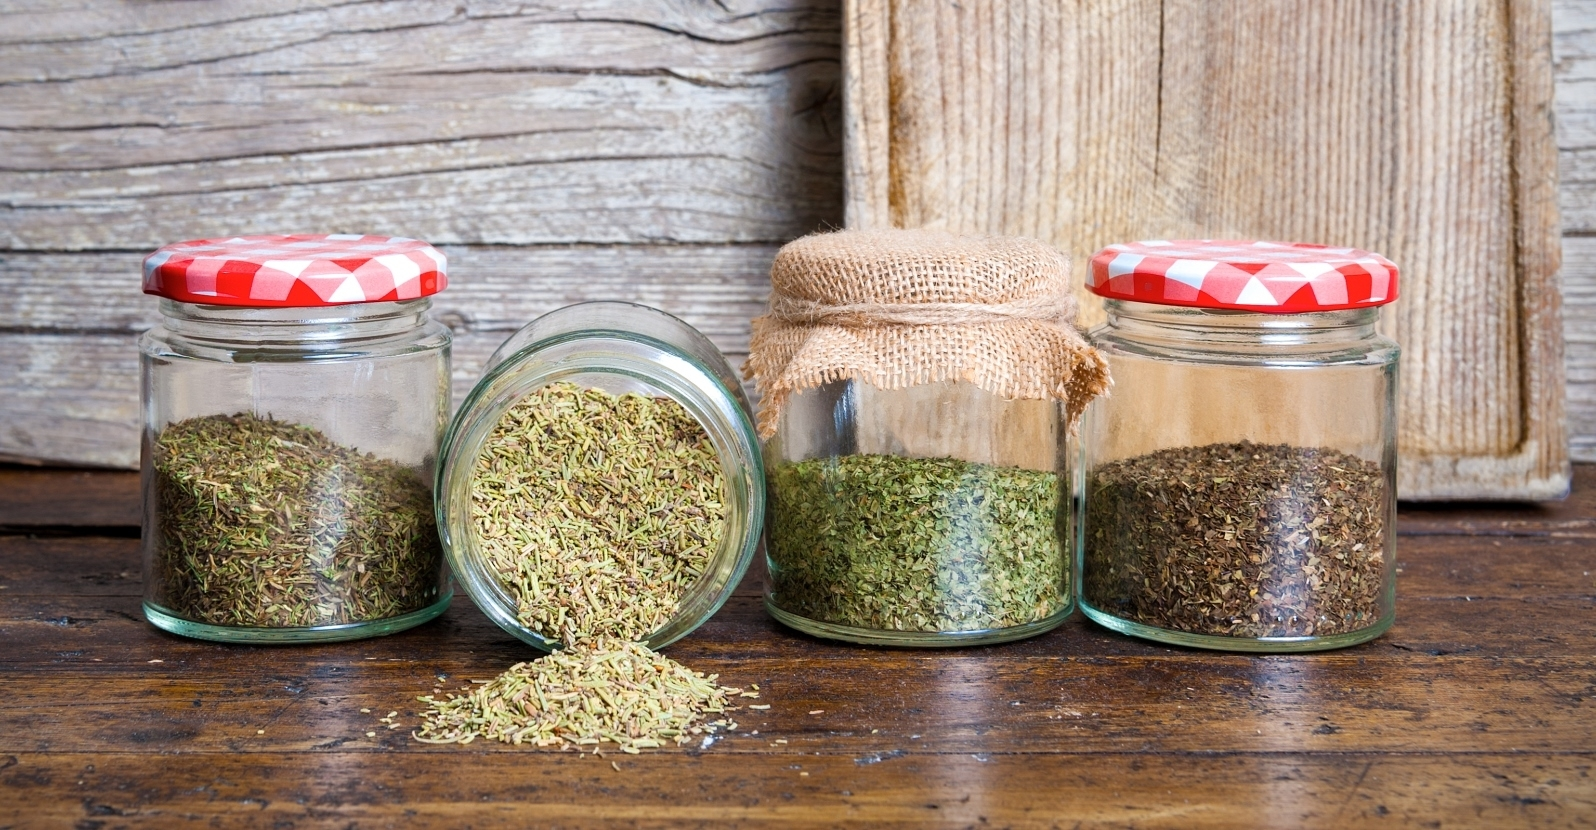 Make Your Own Herb Blends